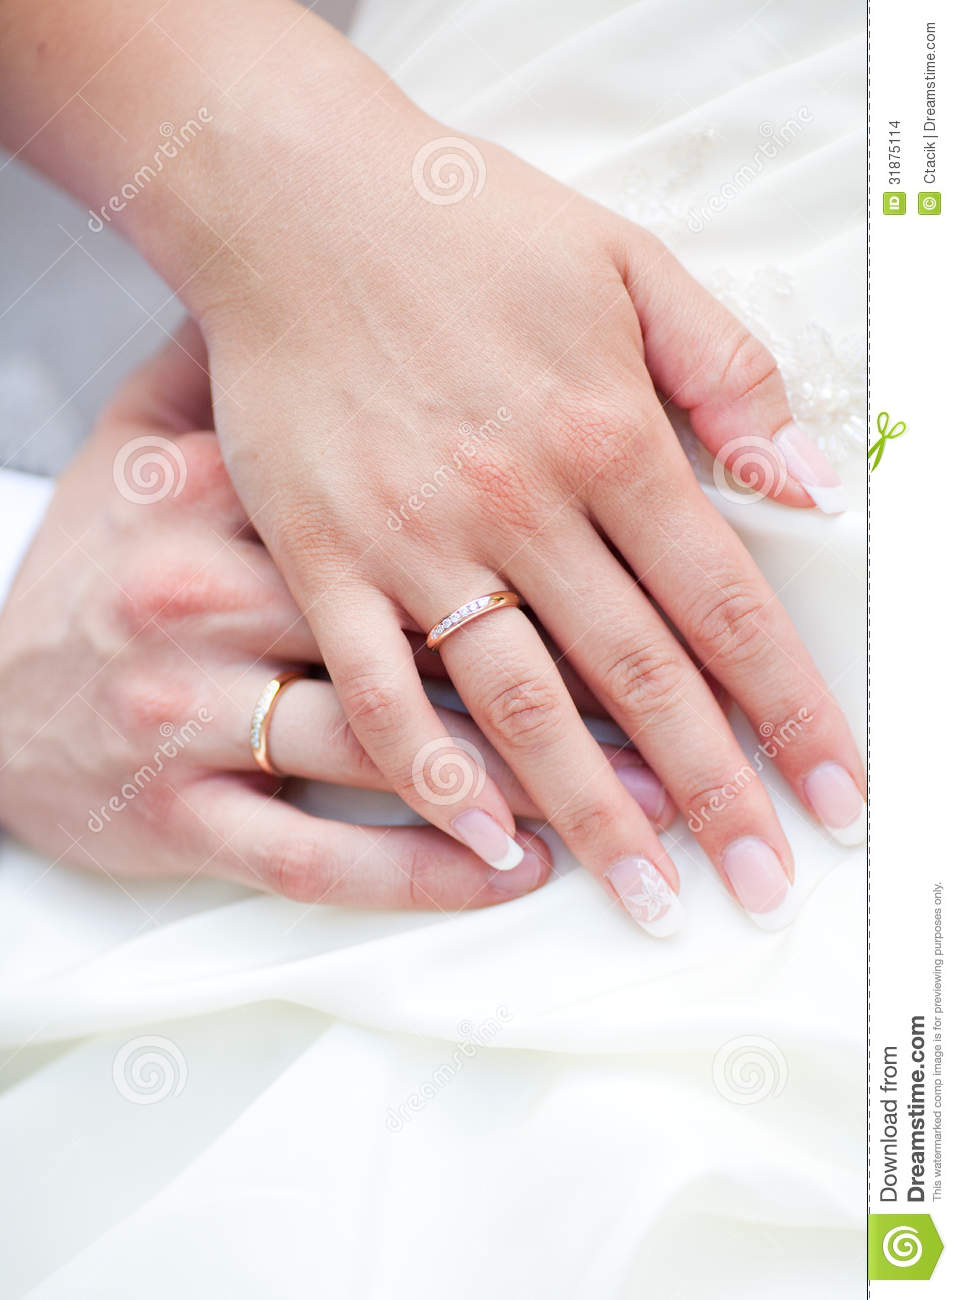 Hands With Rings Of A Wedding Couple Stock Photo - Image of hand ...